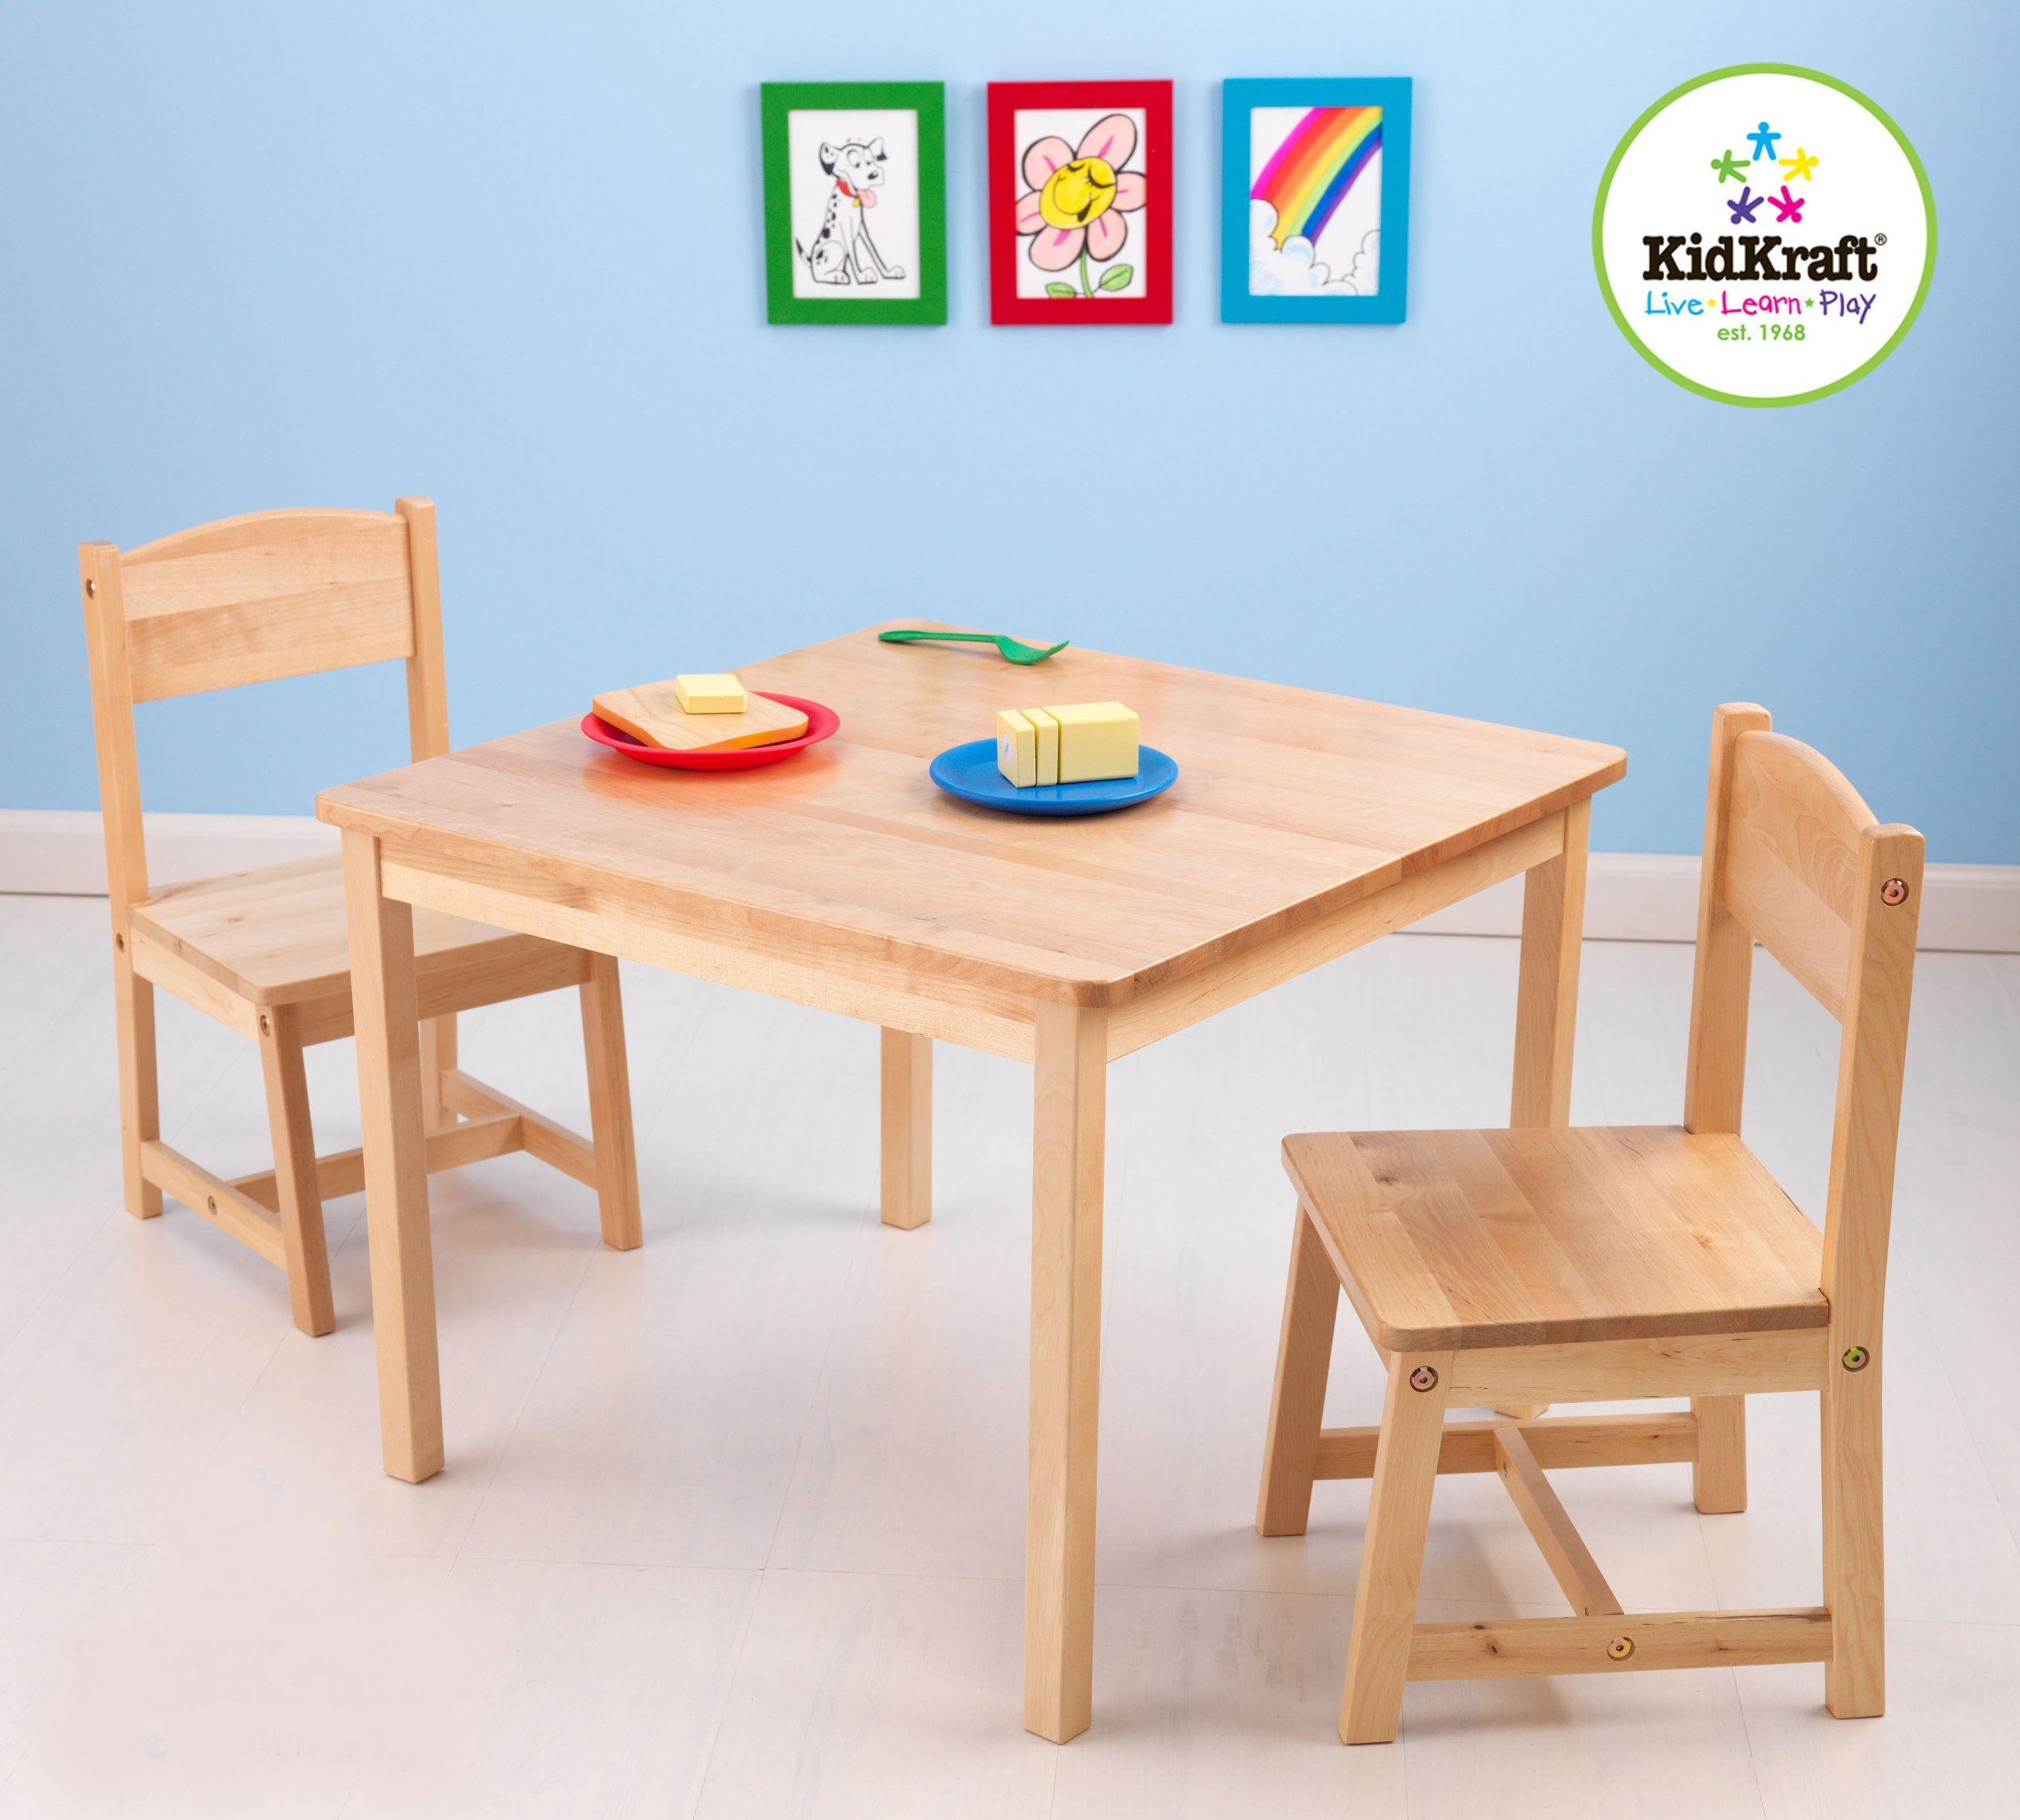 KidKraft 21221 Aspen Set Tavolo e 2 Sedie, MDF, Naturale: Amazon.it ...